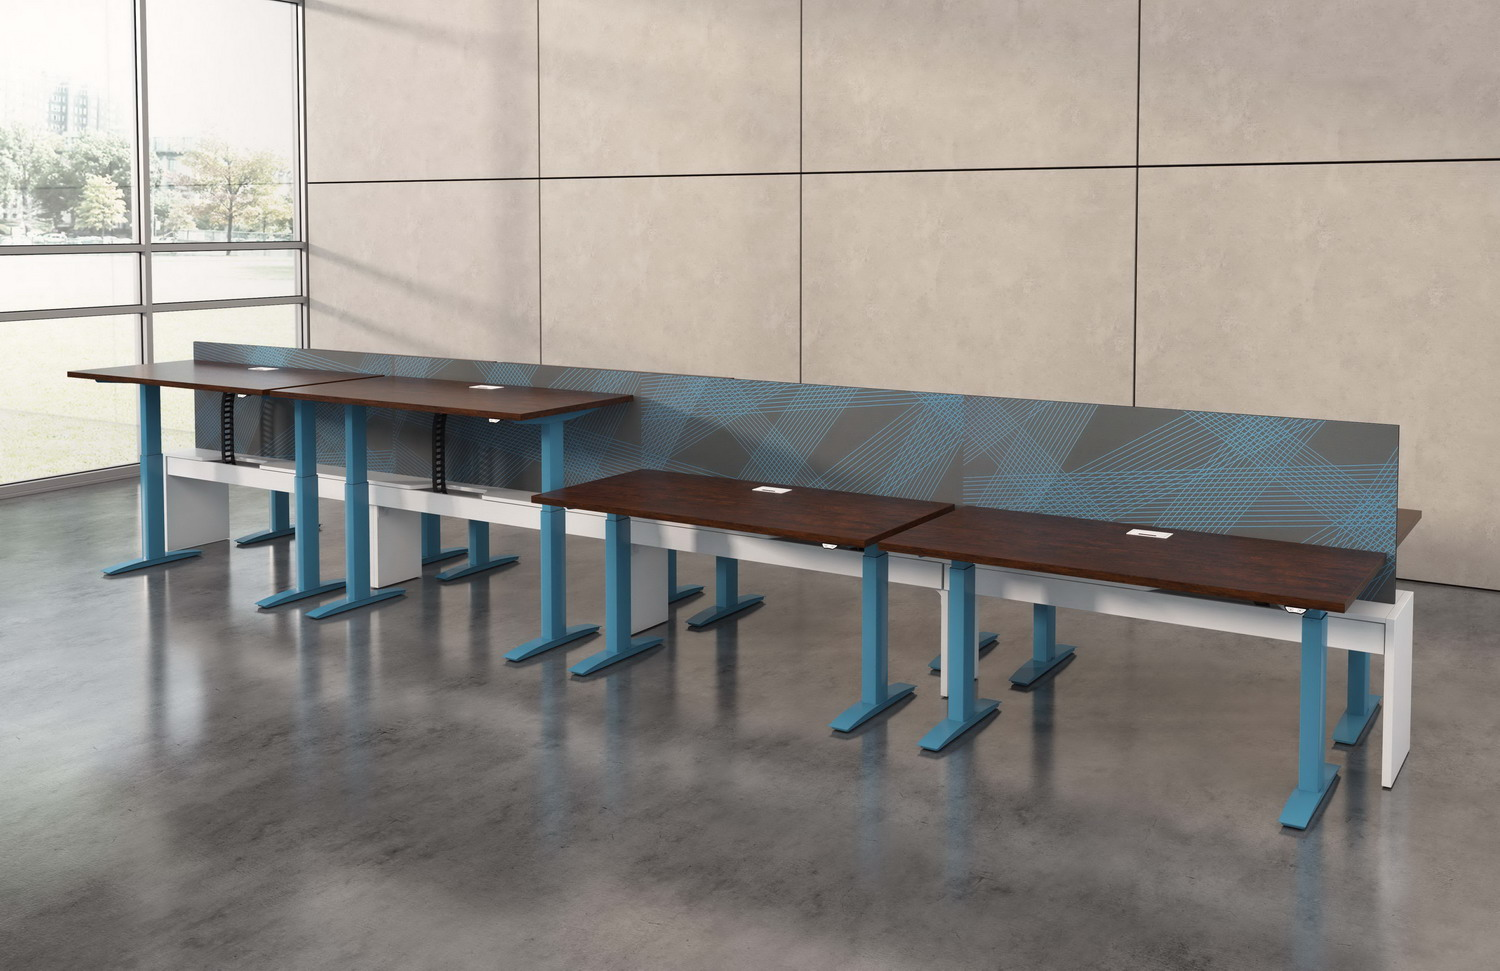 Contract furniture rendering of 4 height adjustable desks with fixed graphic dividers.